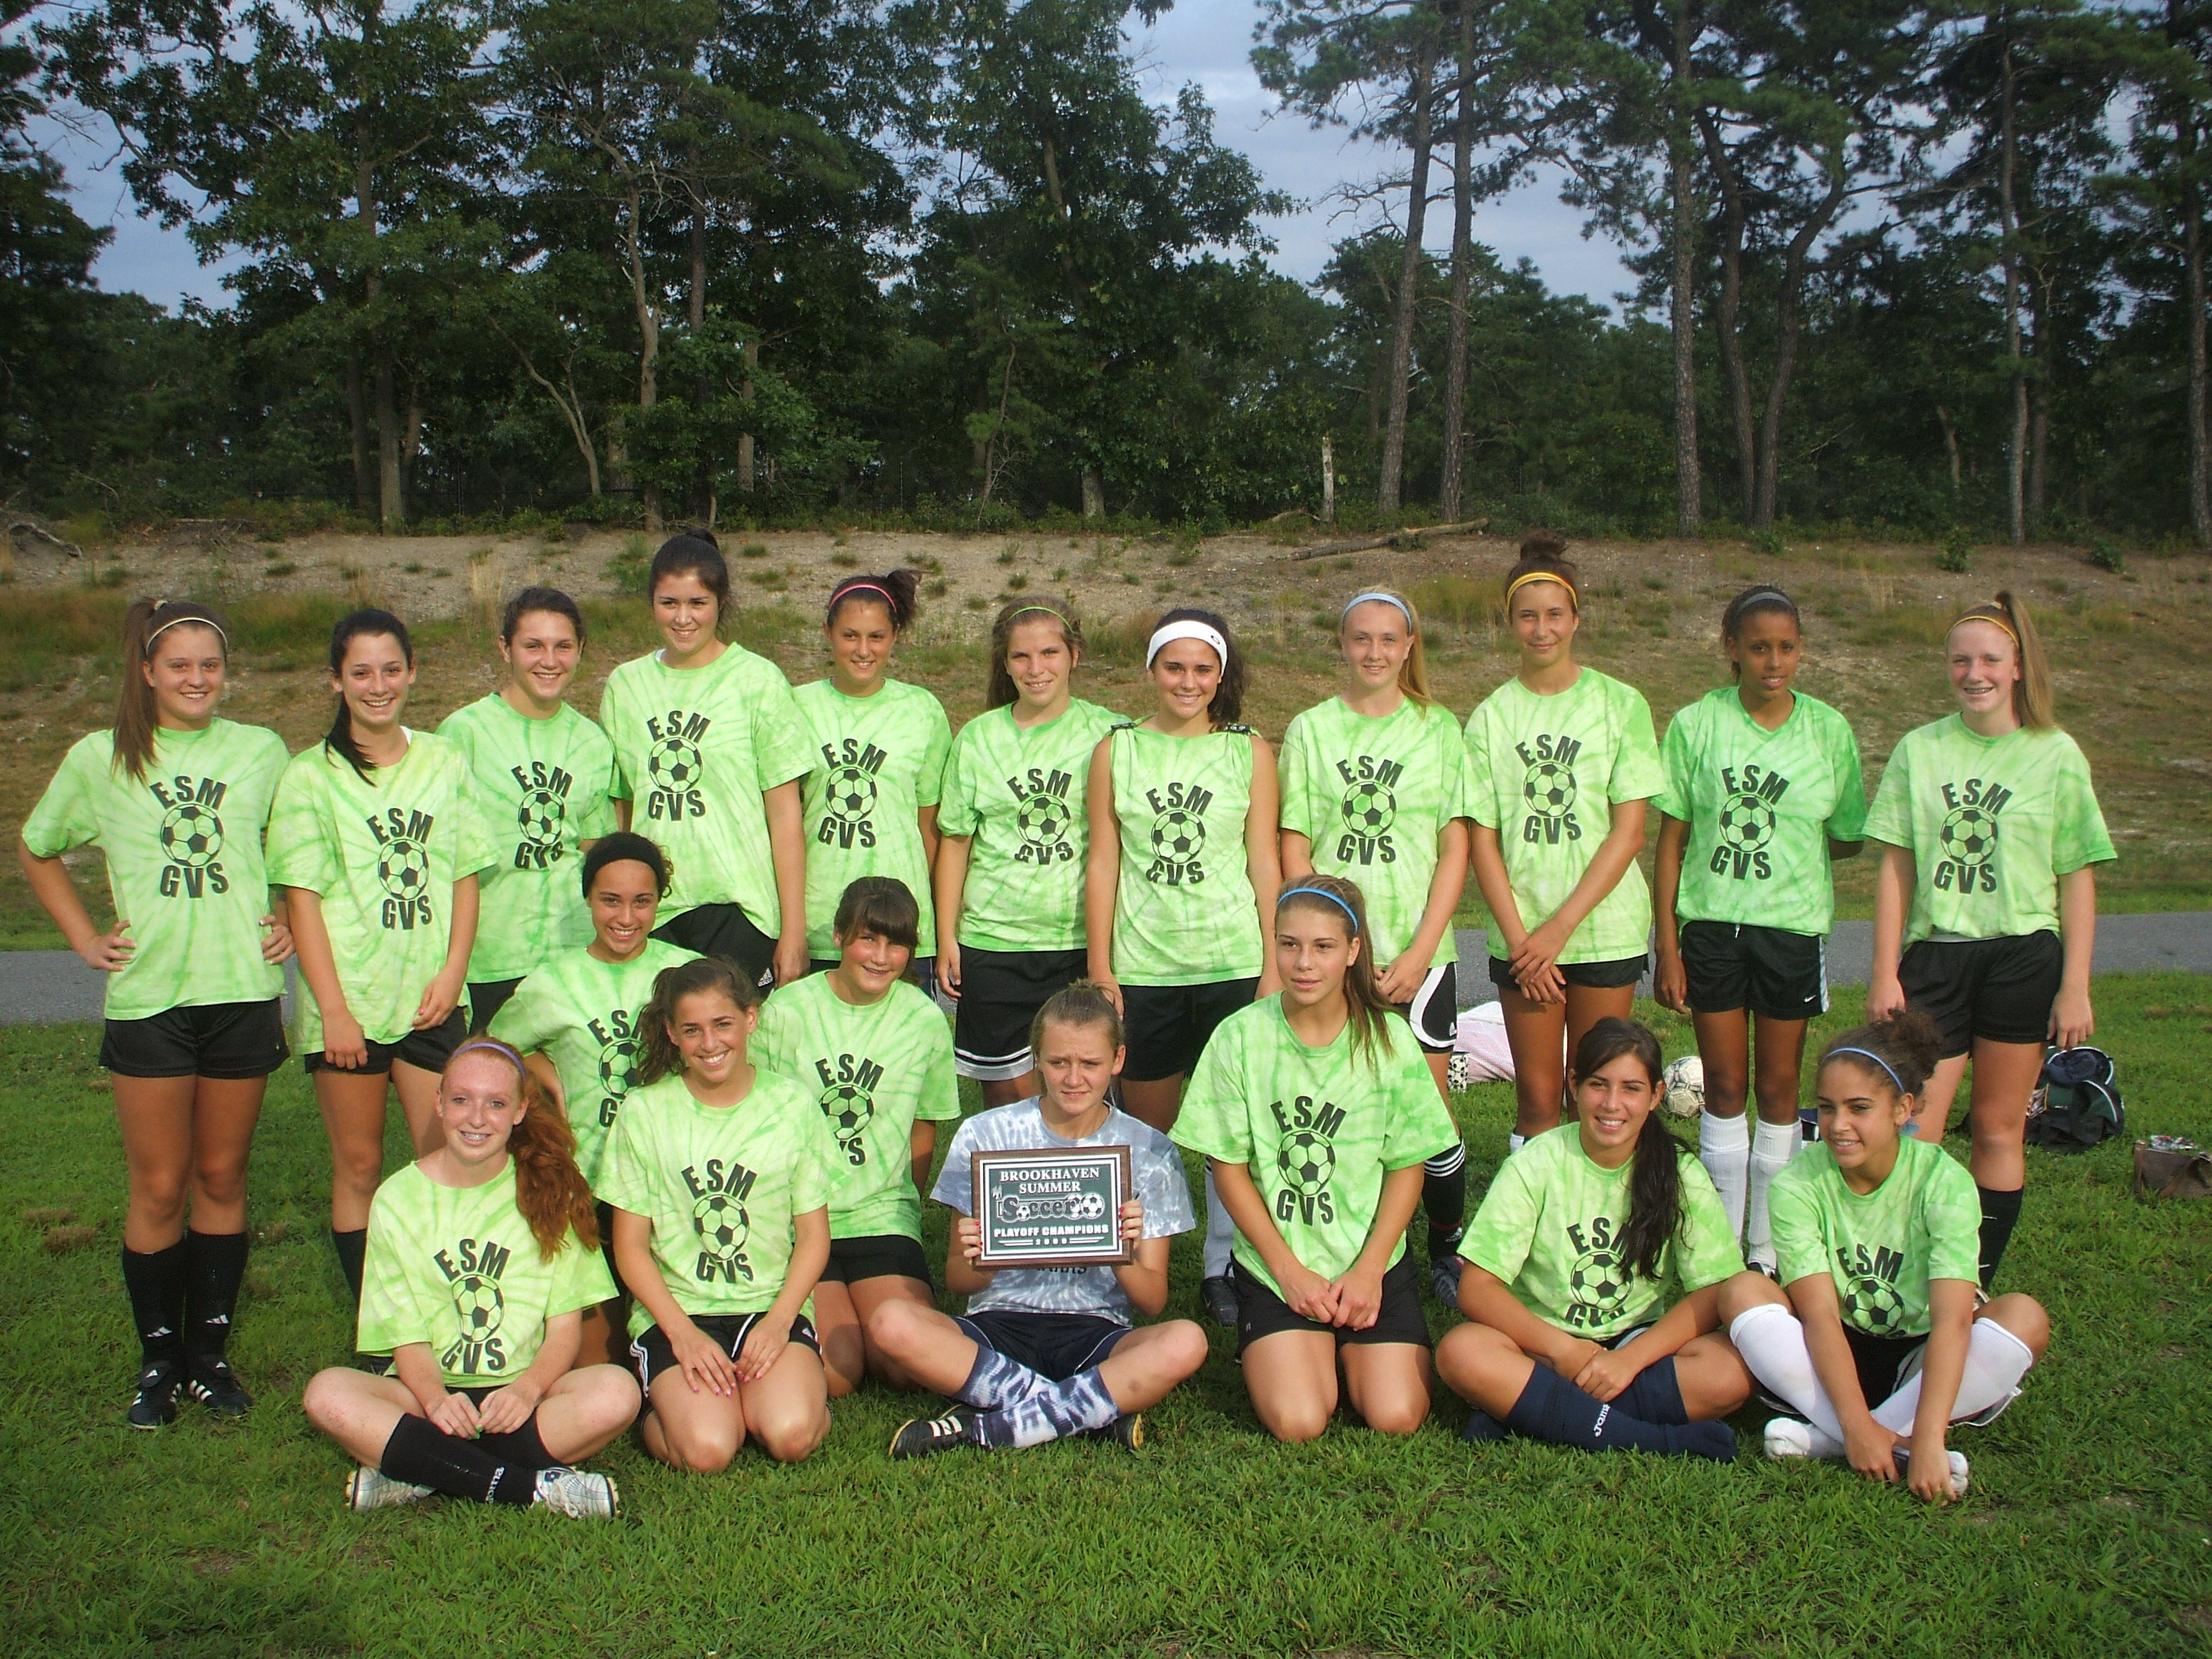 esm gv soccer t shirt photo - Soccer T Shirt Design Ideas